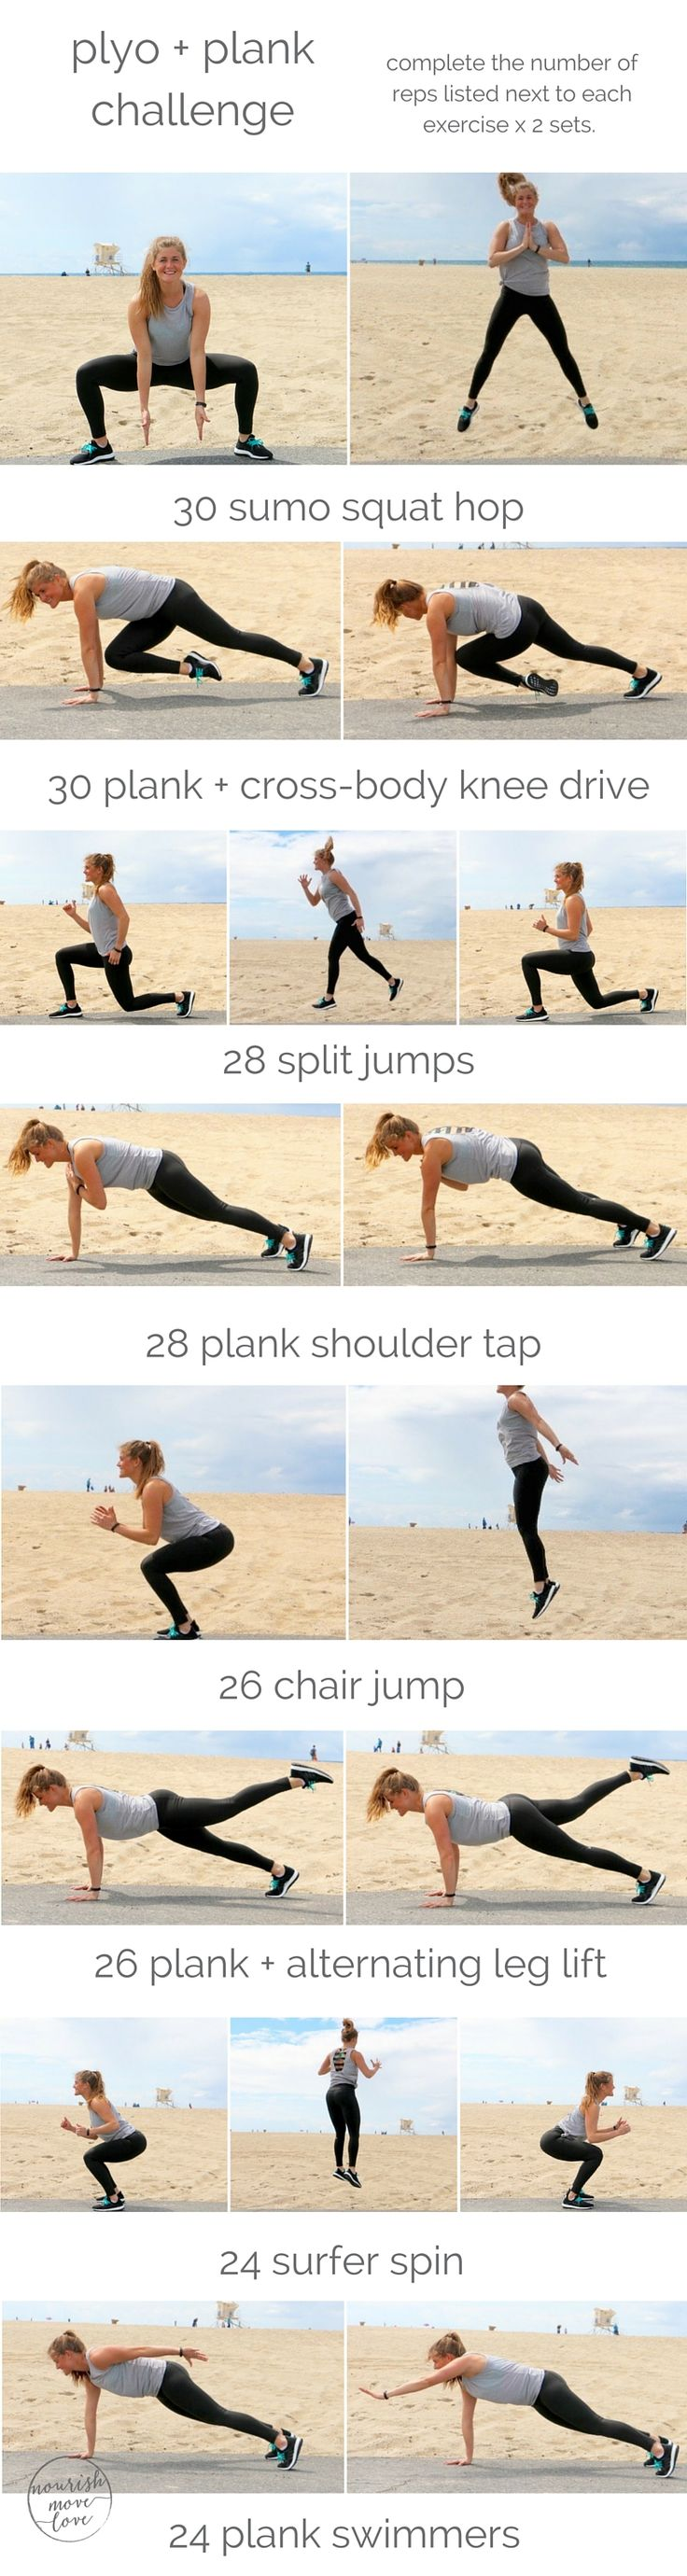 a challenging plank + plyometric workout; burn calories, build explosive strength, and seriously tone your torso using just your bodyweight.